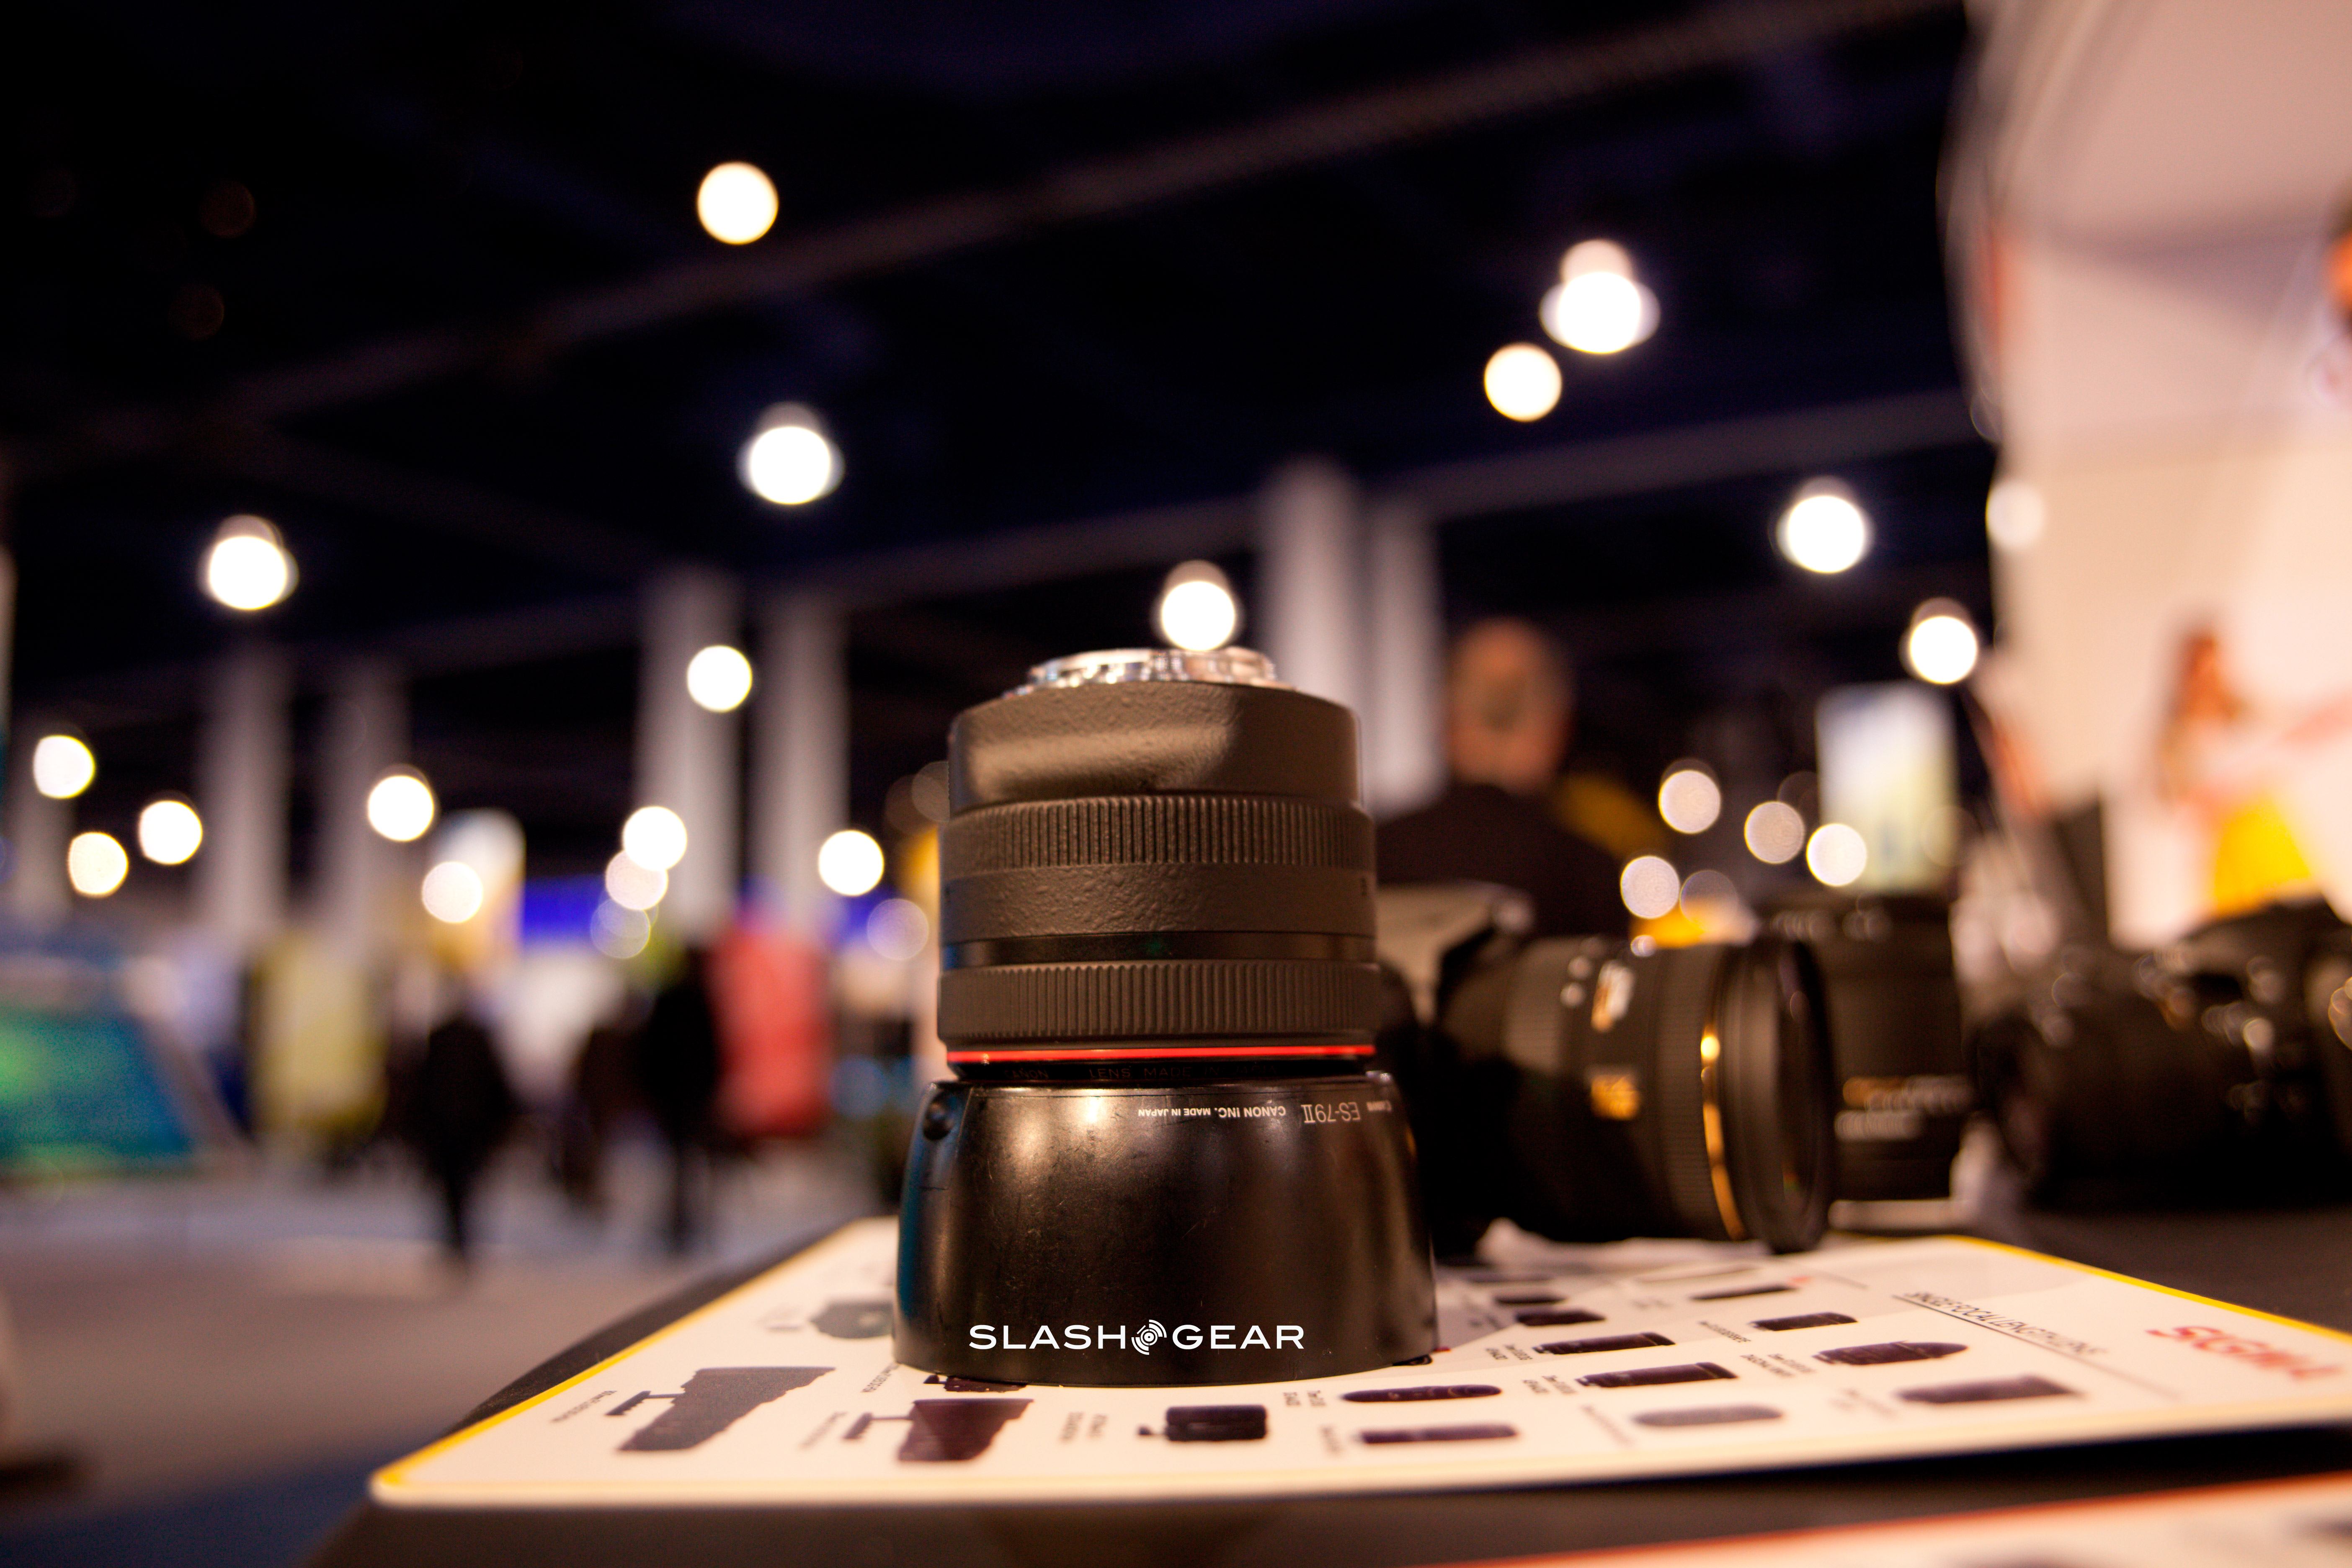 Sigma new 24-70mm f/2.8 IF EX DG HSM hands-on : sharpness at wide open